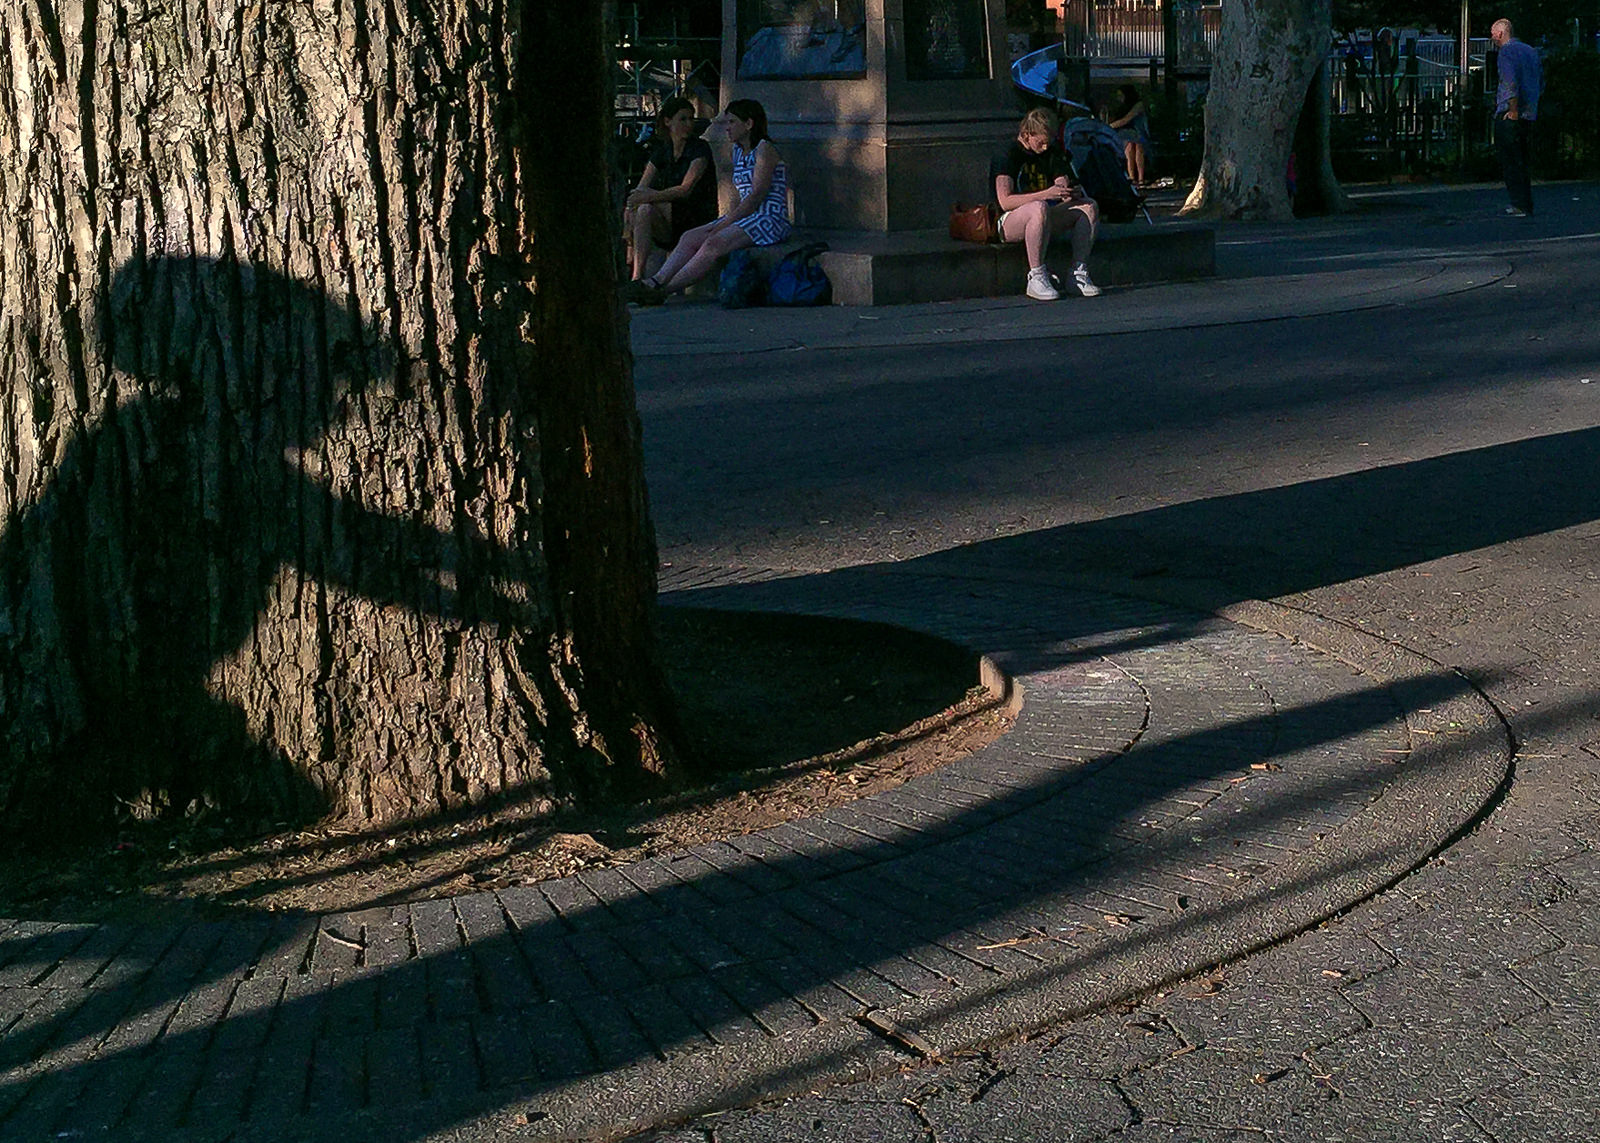 Brooklyn Street Scenes - Shadow of Boy on a Bike, Carroll Park, Brooklyn| © Steven Pisano/flickr